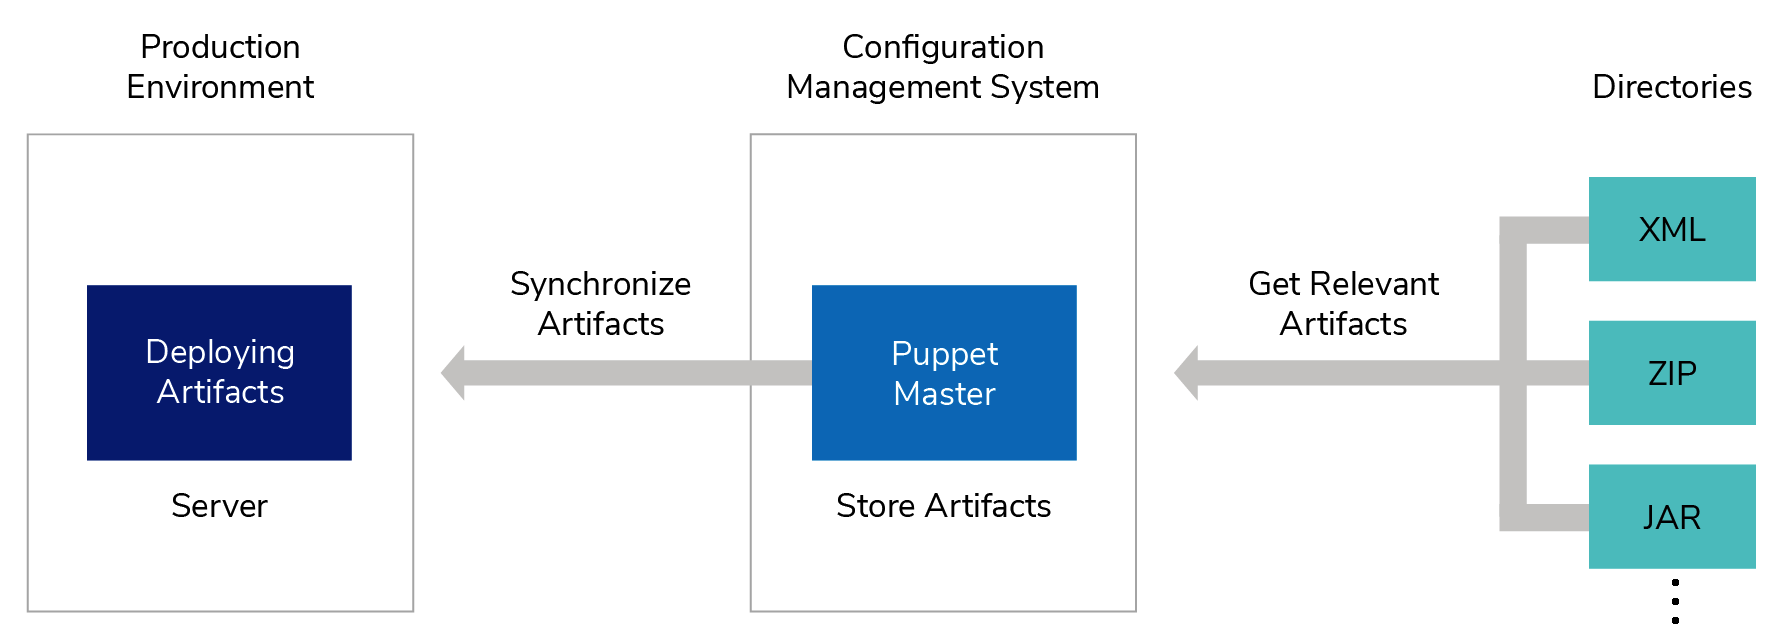 managing your artifacts using a configuration management system